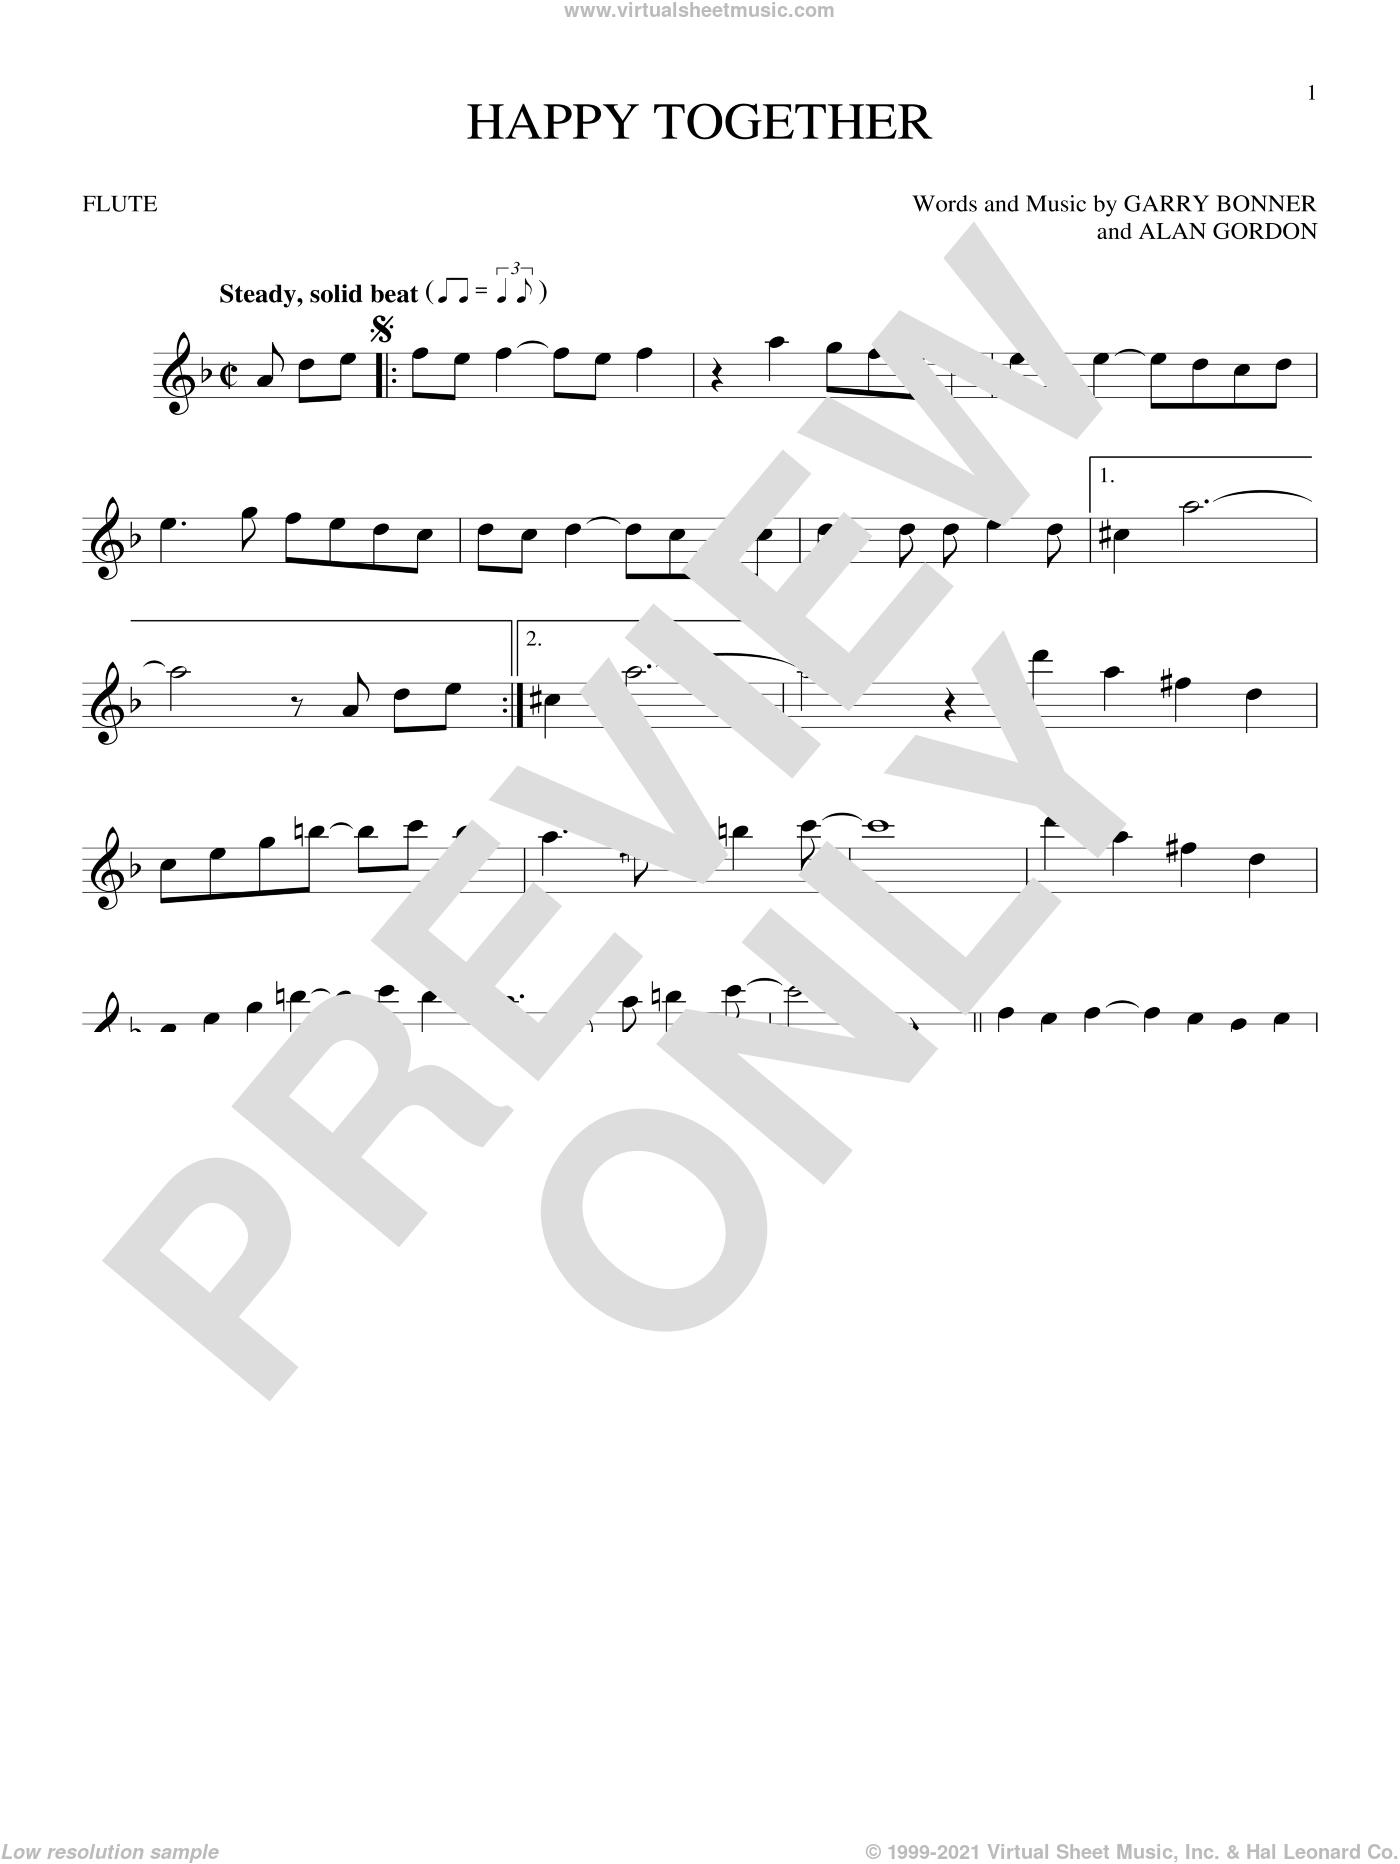 Happy Together sheet music for flute solo by The Turtles, Alan Gordon and Garry Bonner, intermediate skill level